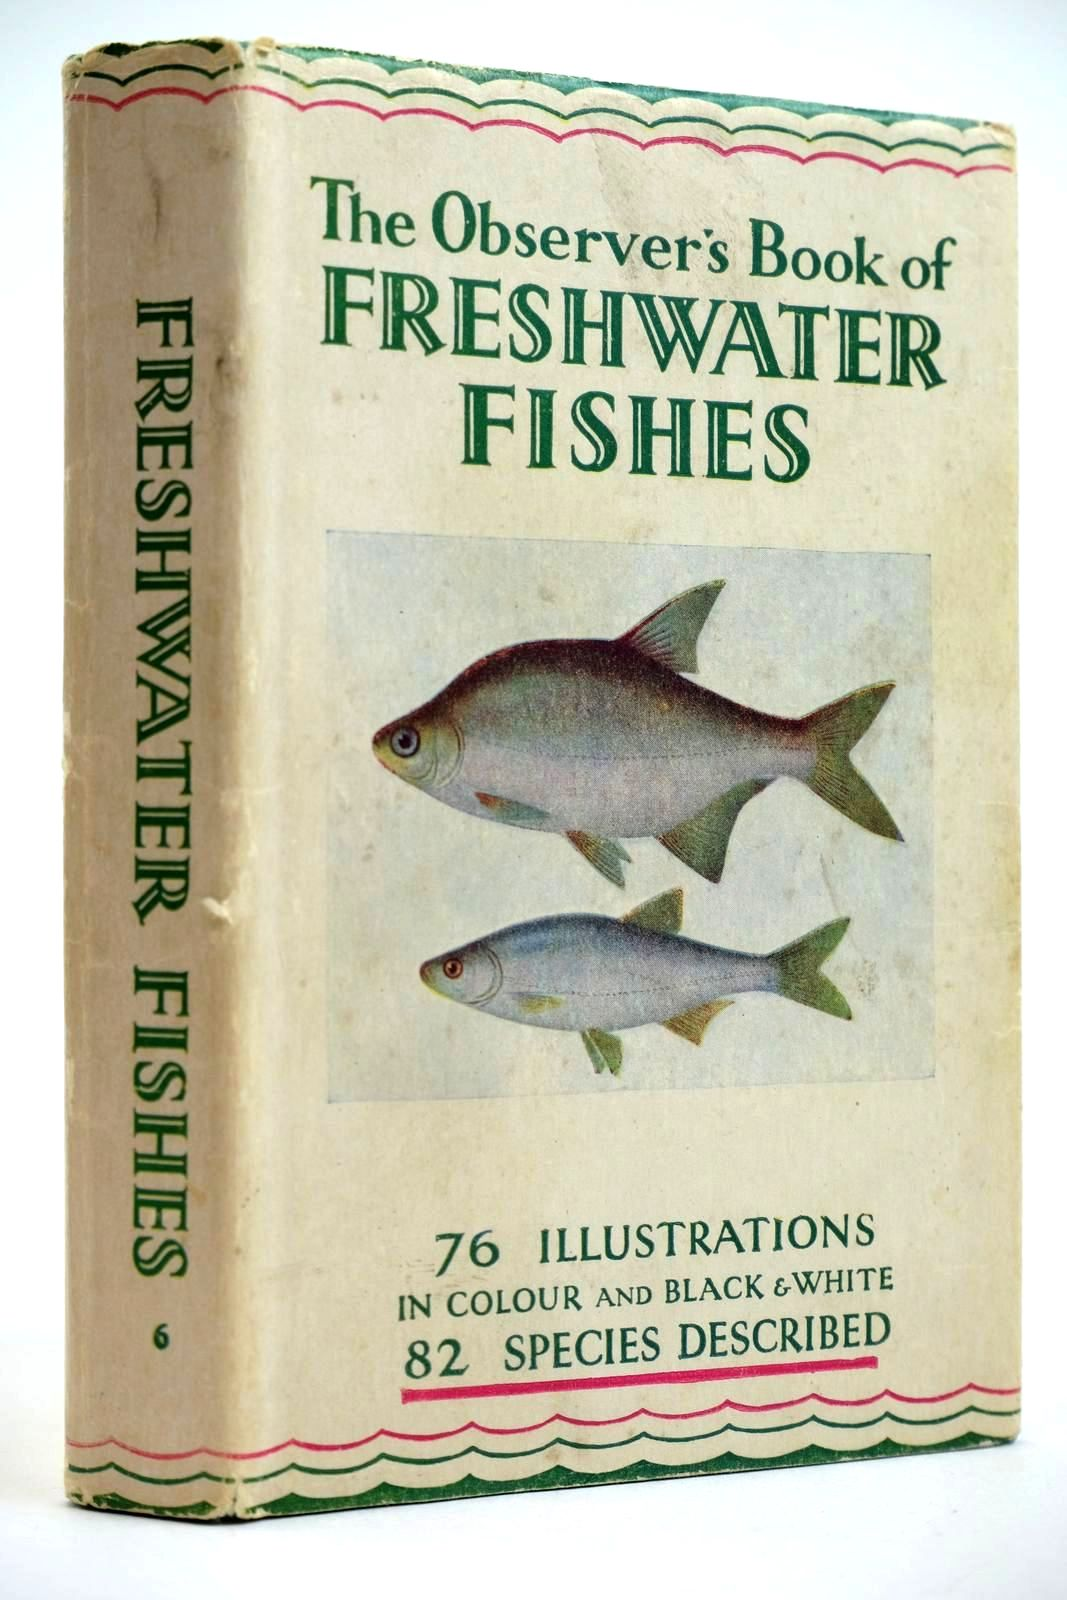 Photo of THE OBSERVER'S BOOK OF FRESHWATER FISHES written by Wells, A. Laurence published by Frederick Warne & Co Ltd. (STOCK CODE: 2132052)  for sale by Stella & Rose's Books